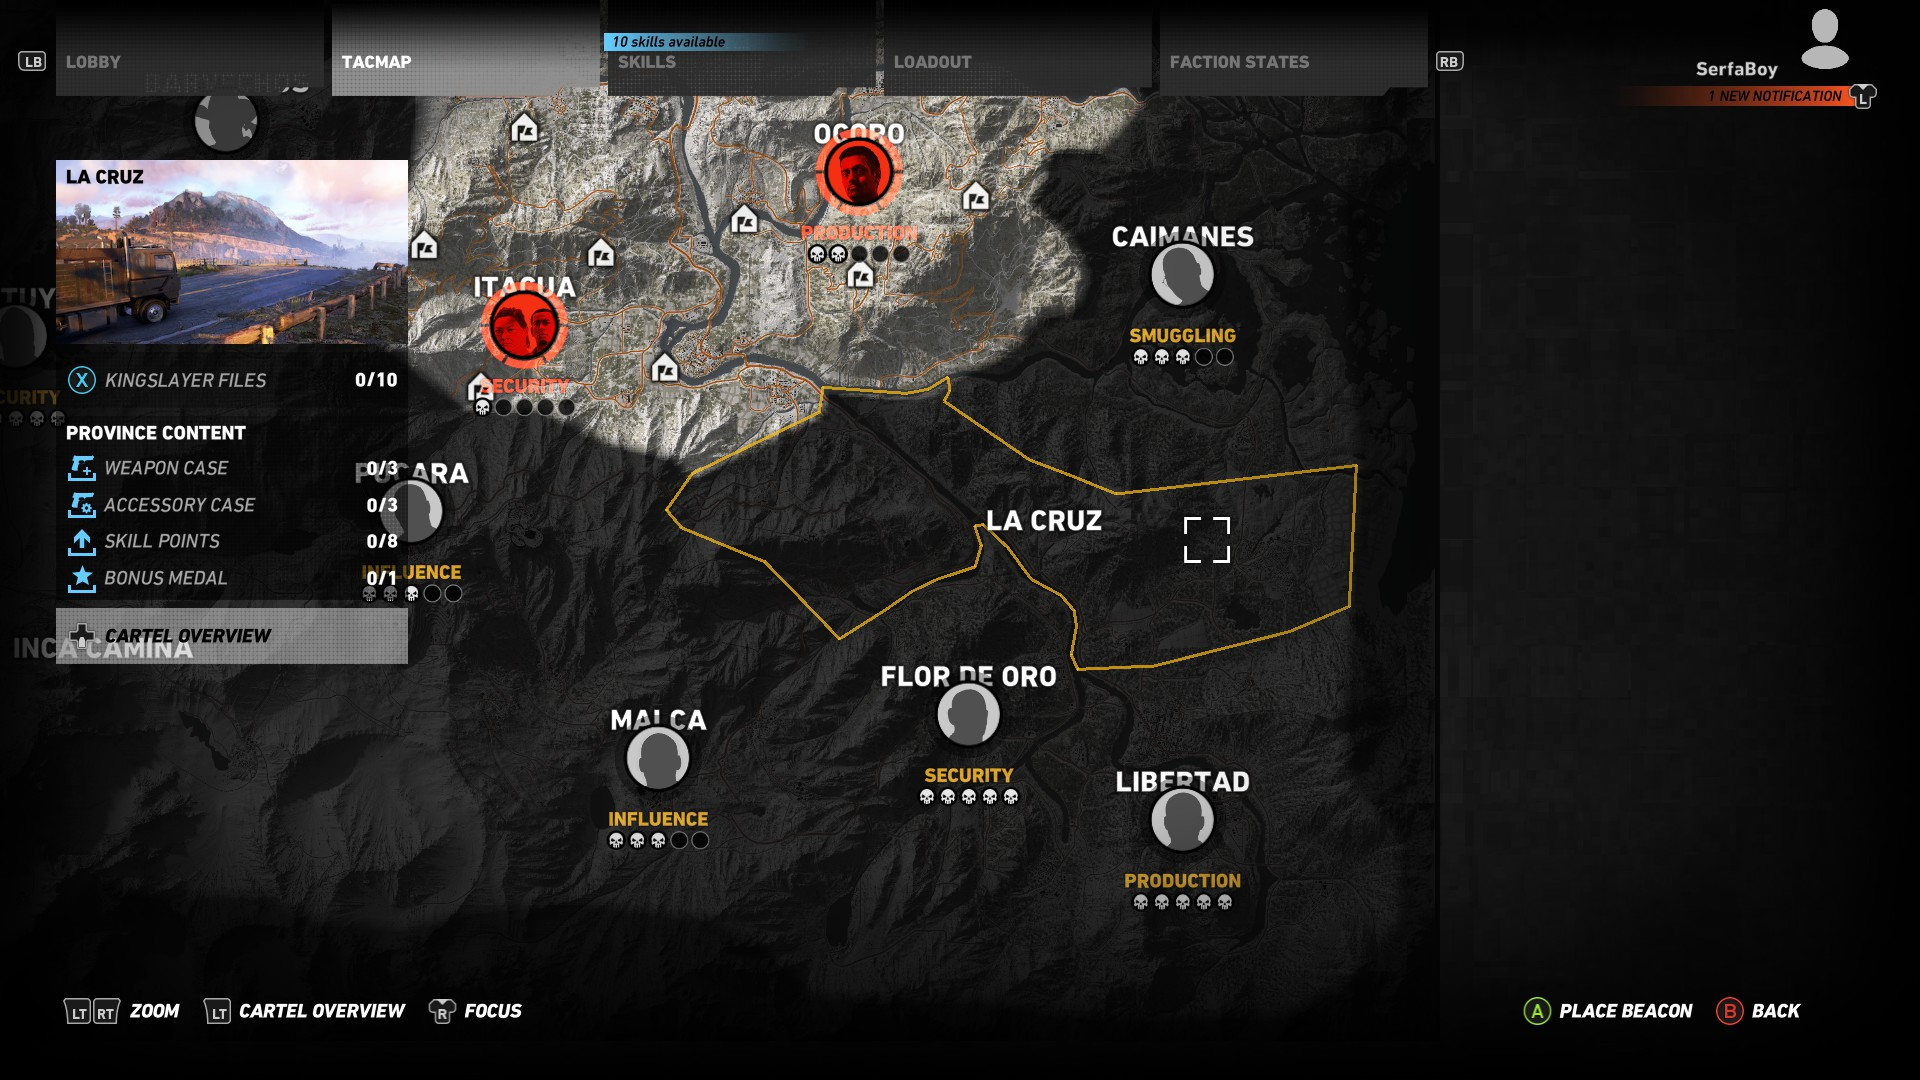 P90 map locaiton - How to get the P90 in Ghost Recon Wildlands